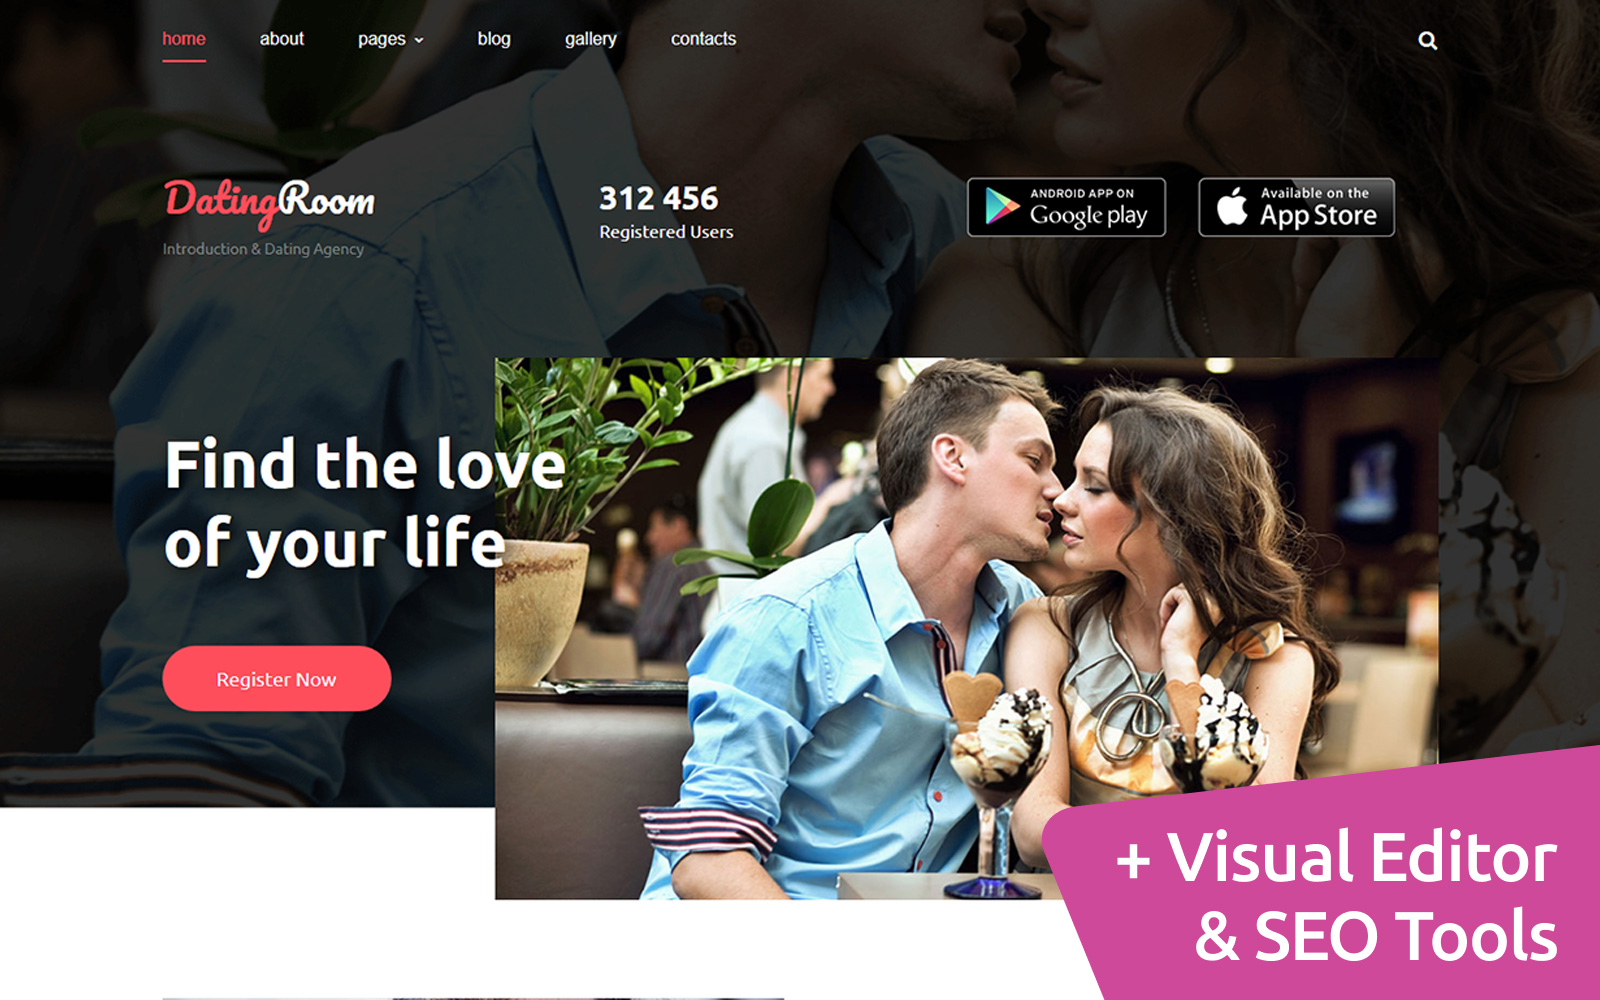 Dating & Introduction Agencies Moto CMS 3 Template